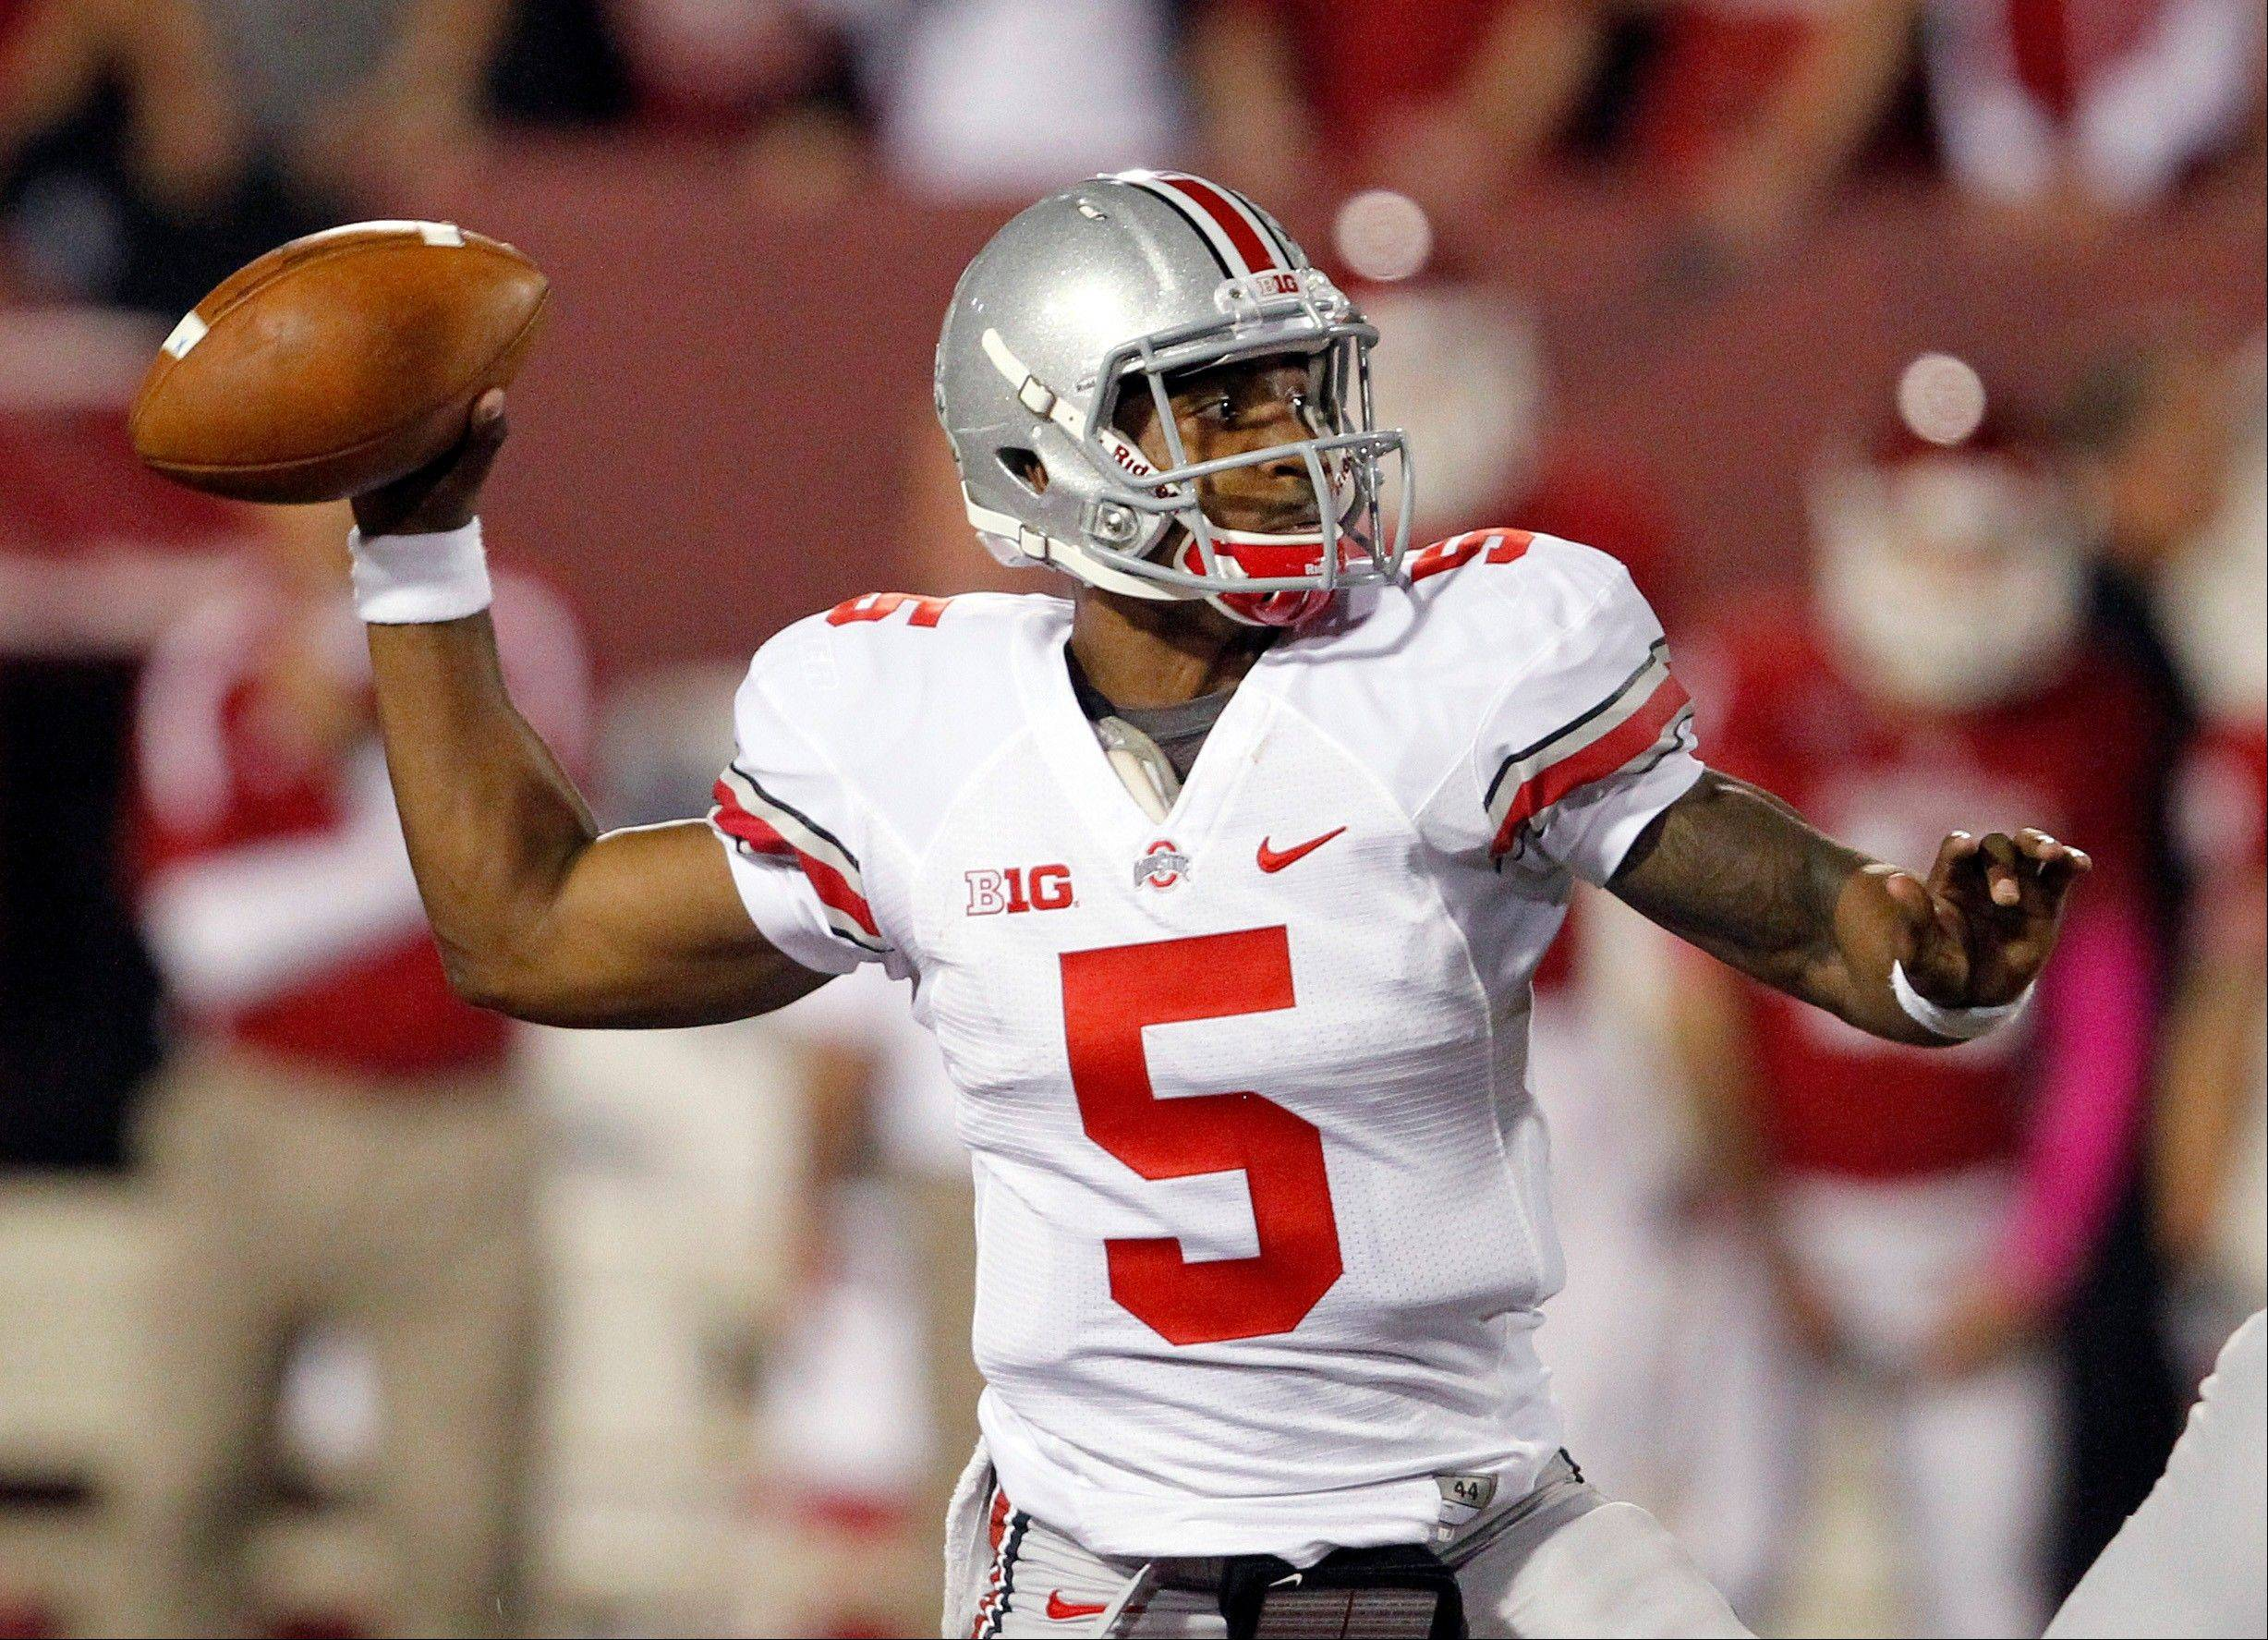 Ohio State quarterback Braxton Miller throws during the first half against Indiana in an NCAA college football game in Bloomington, Ind., Saturday, Oct. 13, 2012. (AP Photo/Sam Riche)